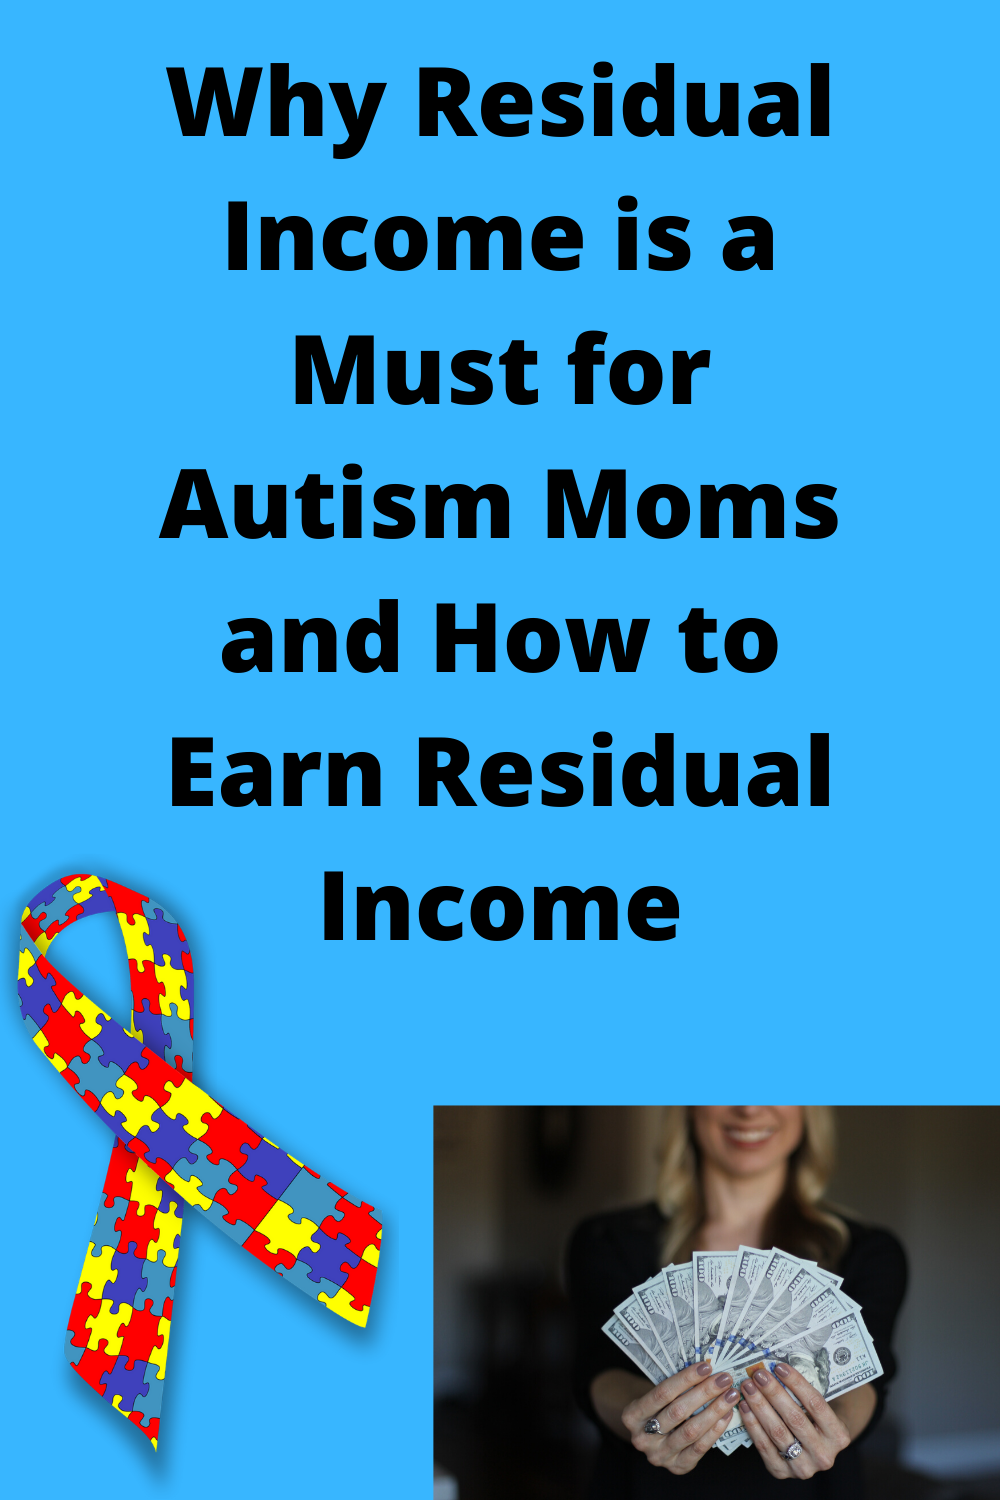 Why Residual Income is a Must for Autism Moms and How to Earn Residual Income